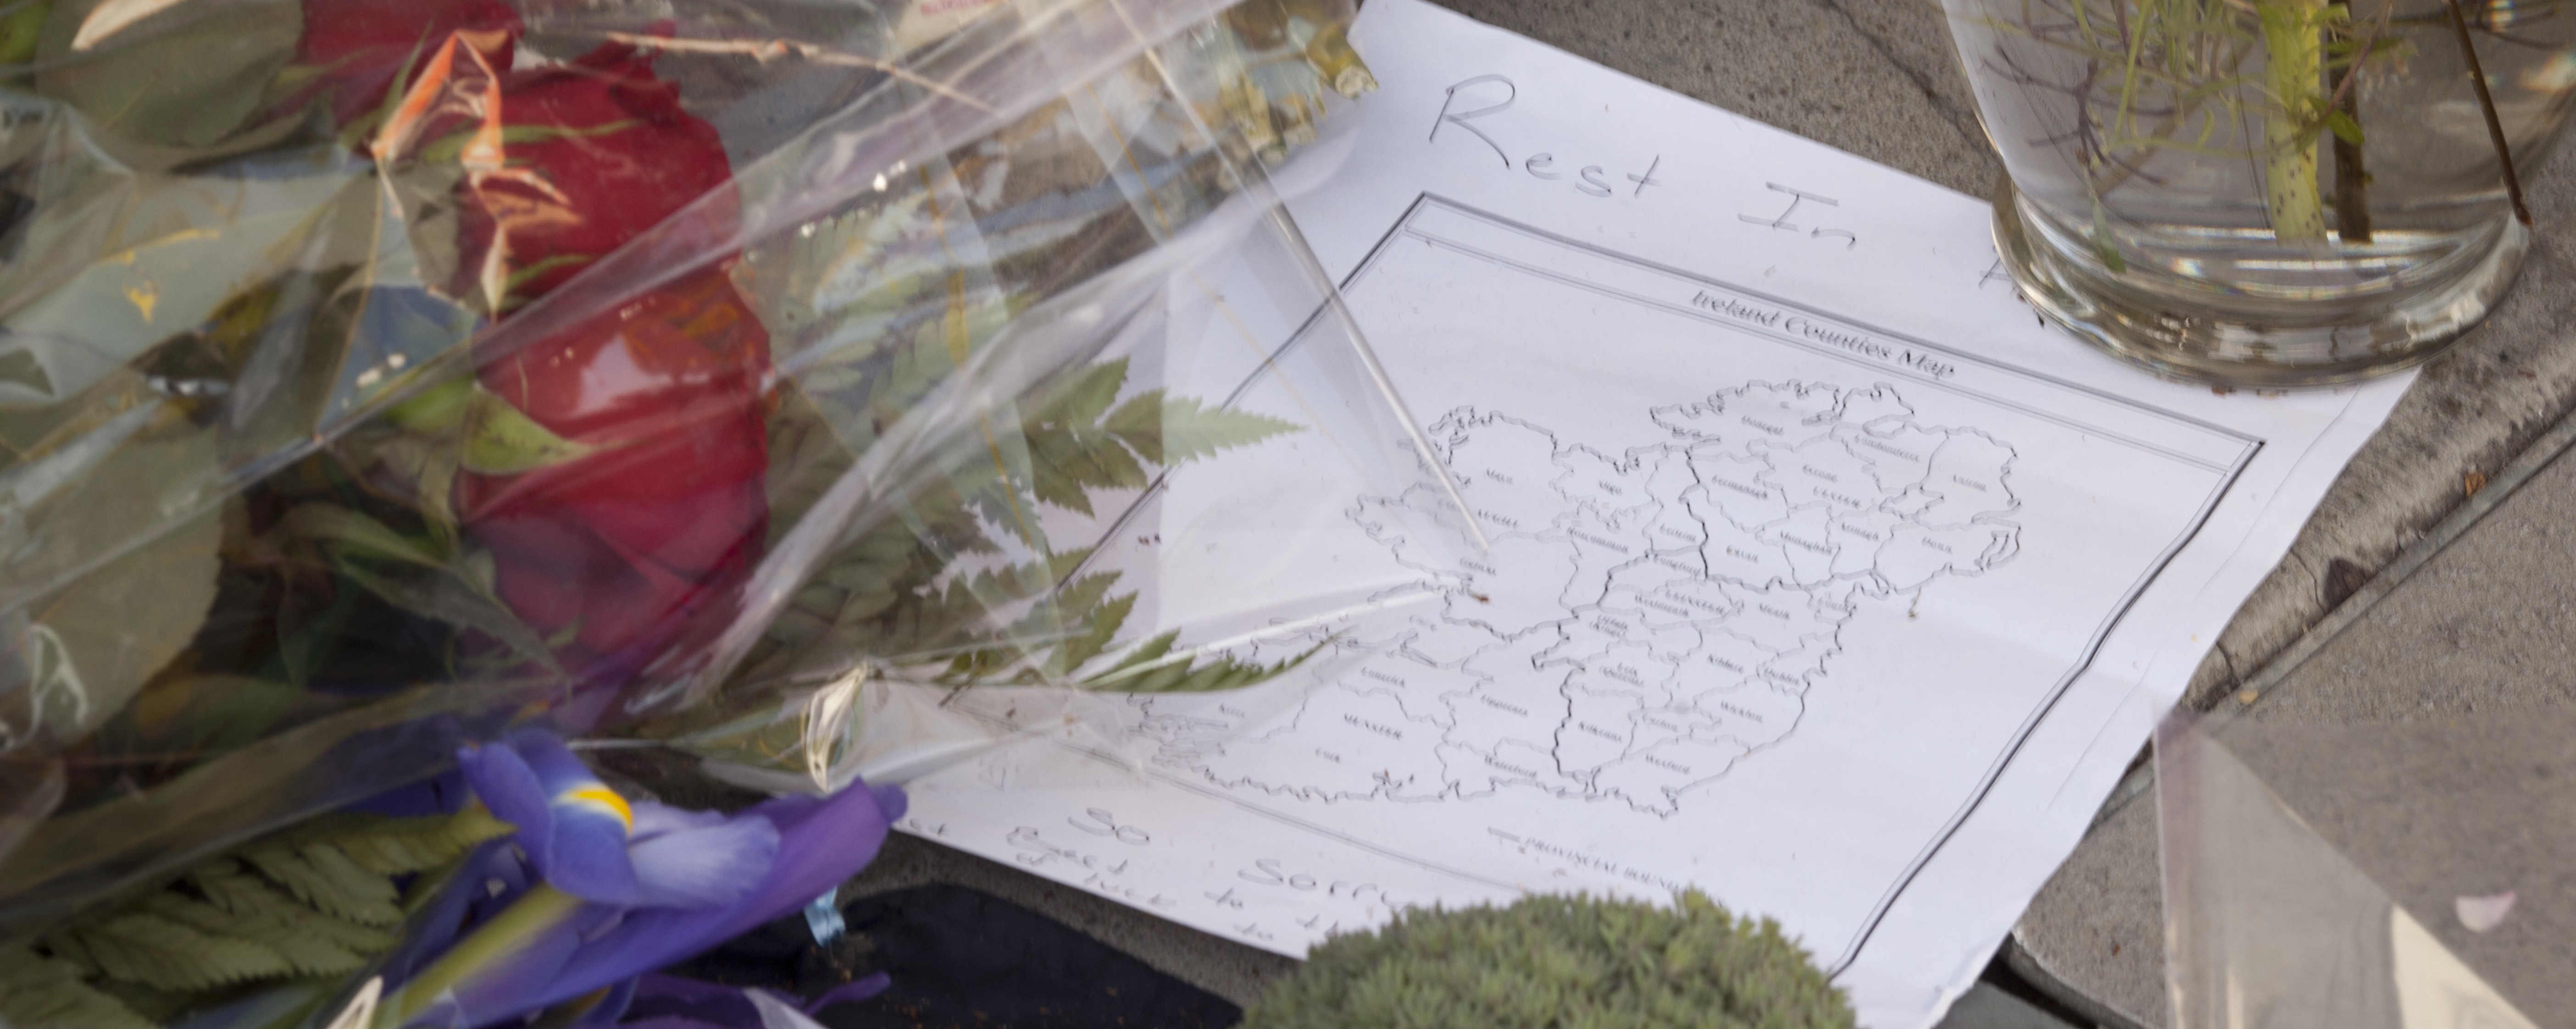 Ireland Mourns Berkeley Student Deaths, as New York Times Apologizes for 'Insensitive' Coverage